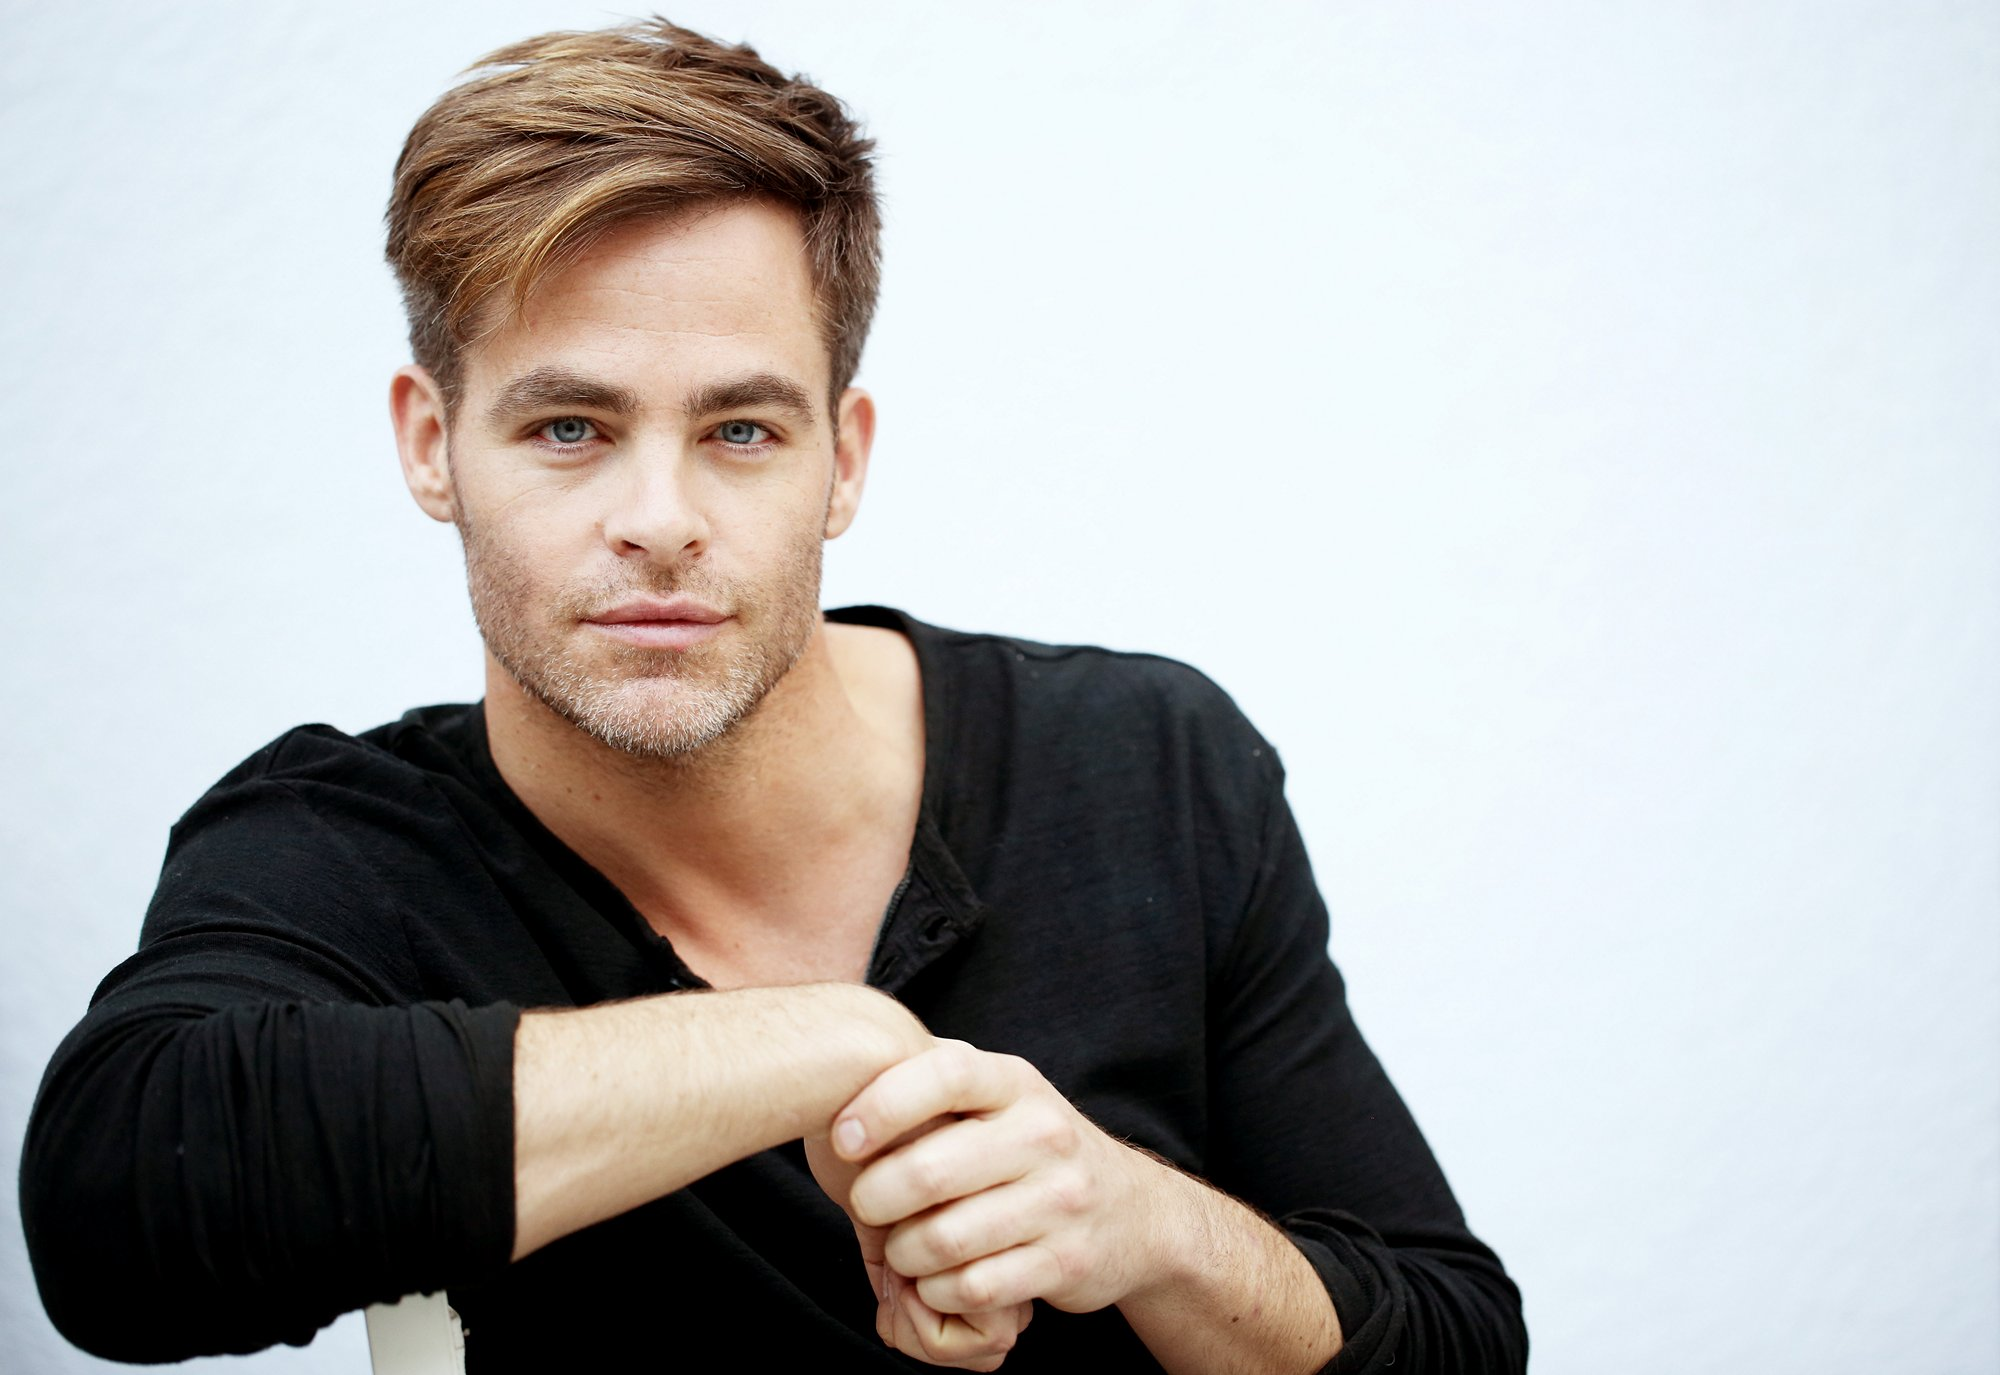 GOOD LOOKS Too Hard To Handle, American Actor Chris Pine Talks About The Burden Of Being Handsome